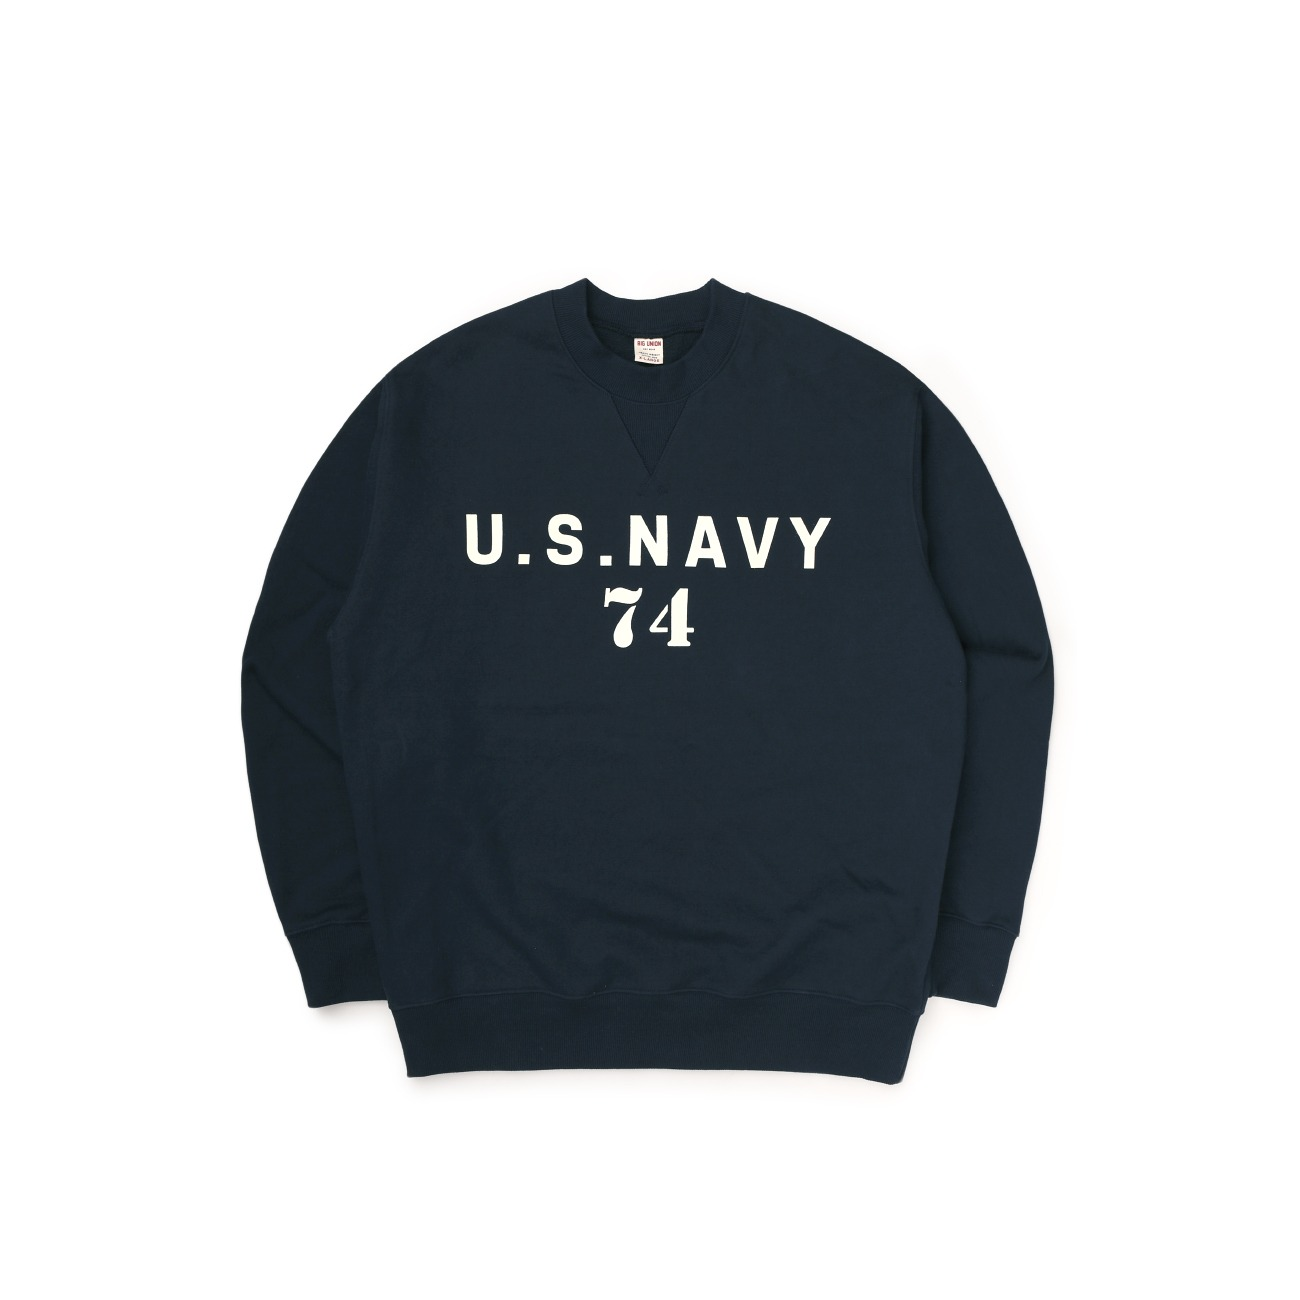 89 U.S. Navy Sweat Crew